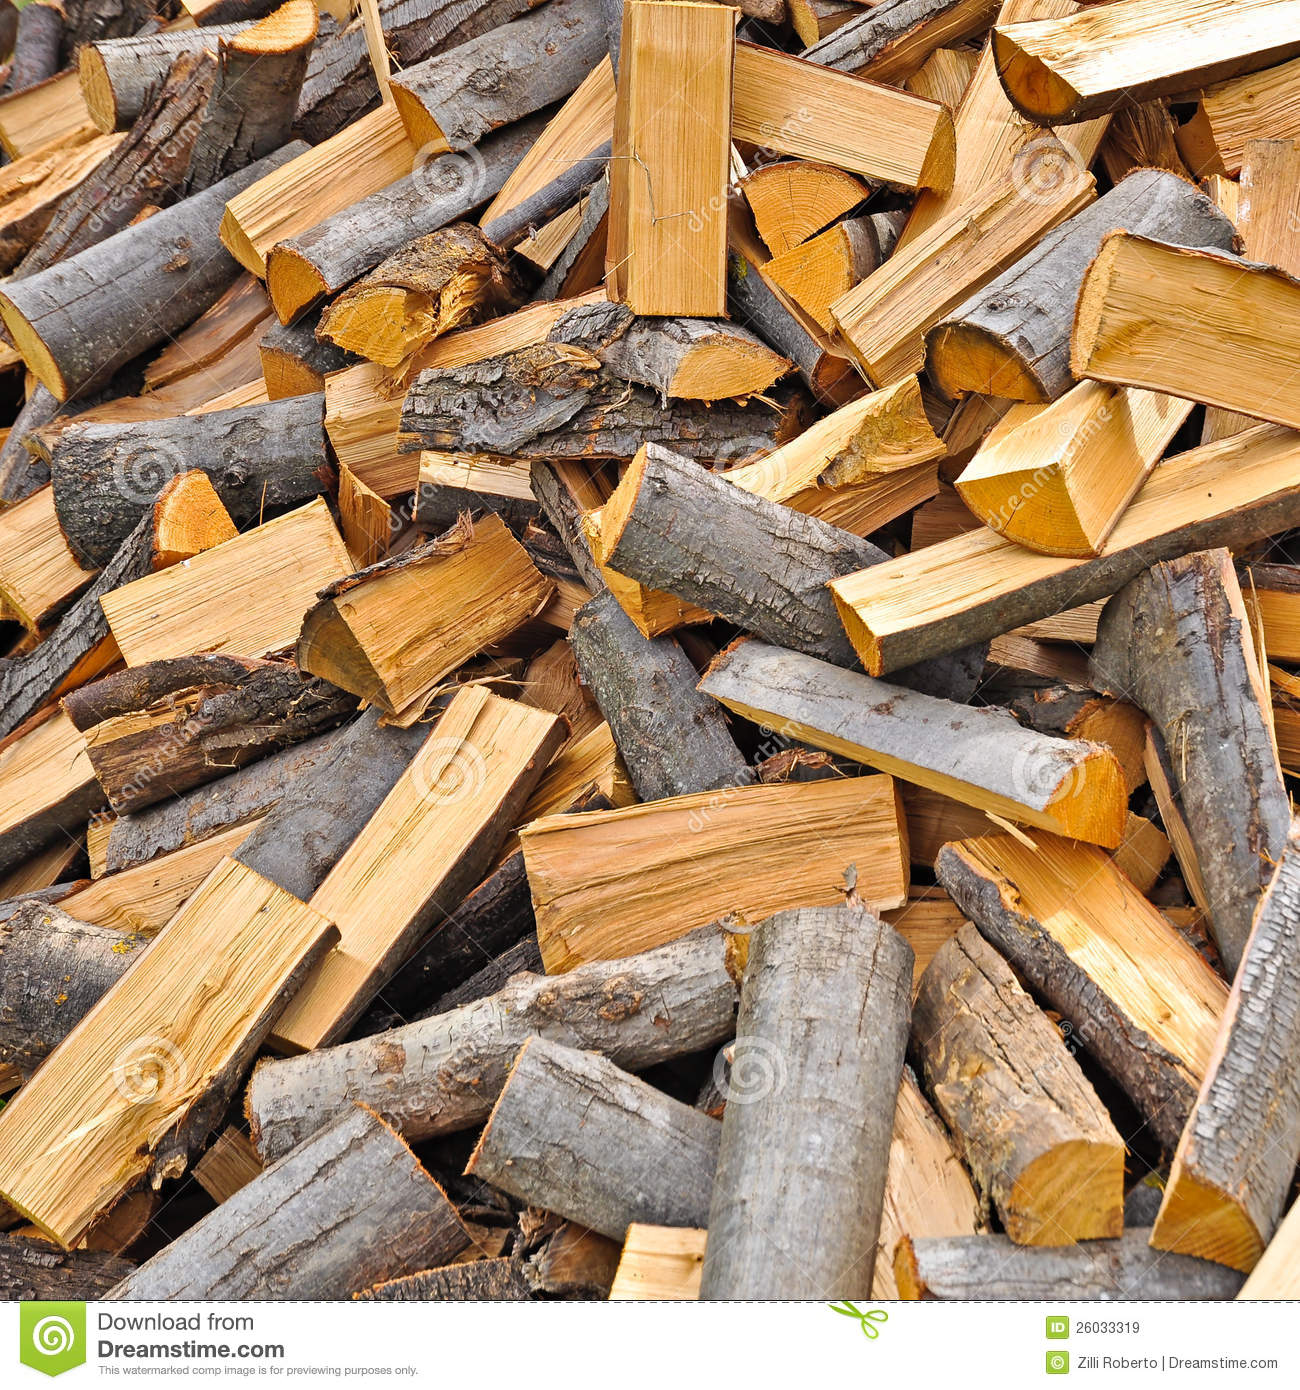 Renewable Resources Royalty Free Stock Images - Image: 26033319